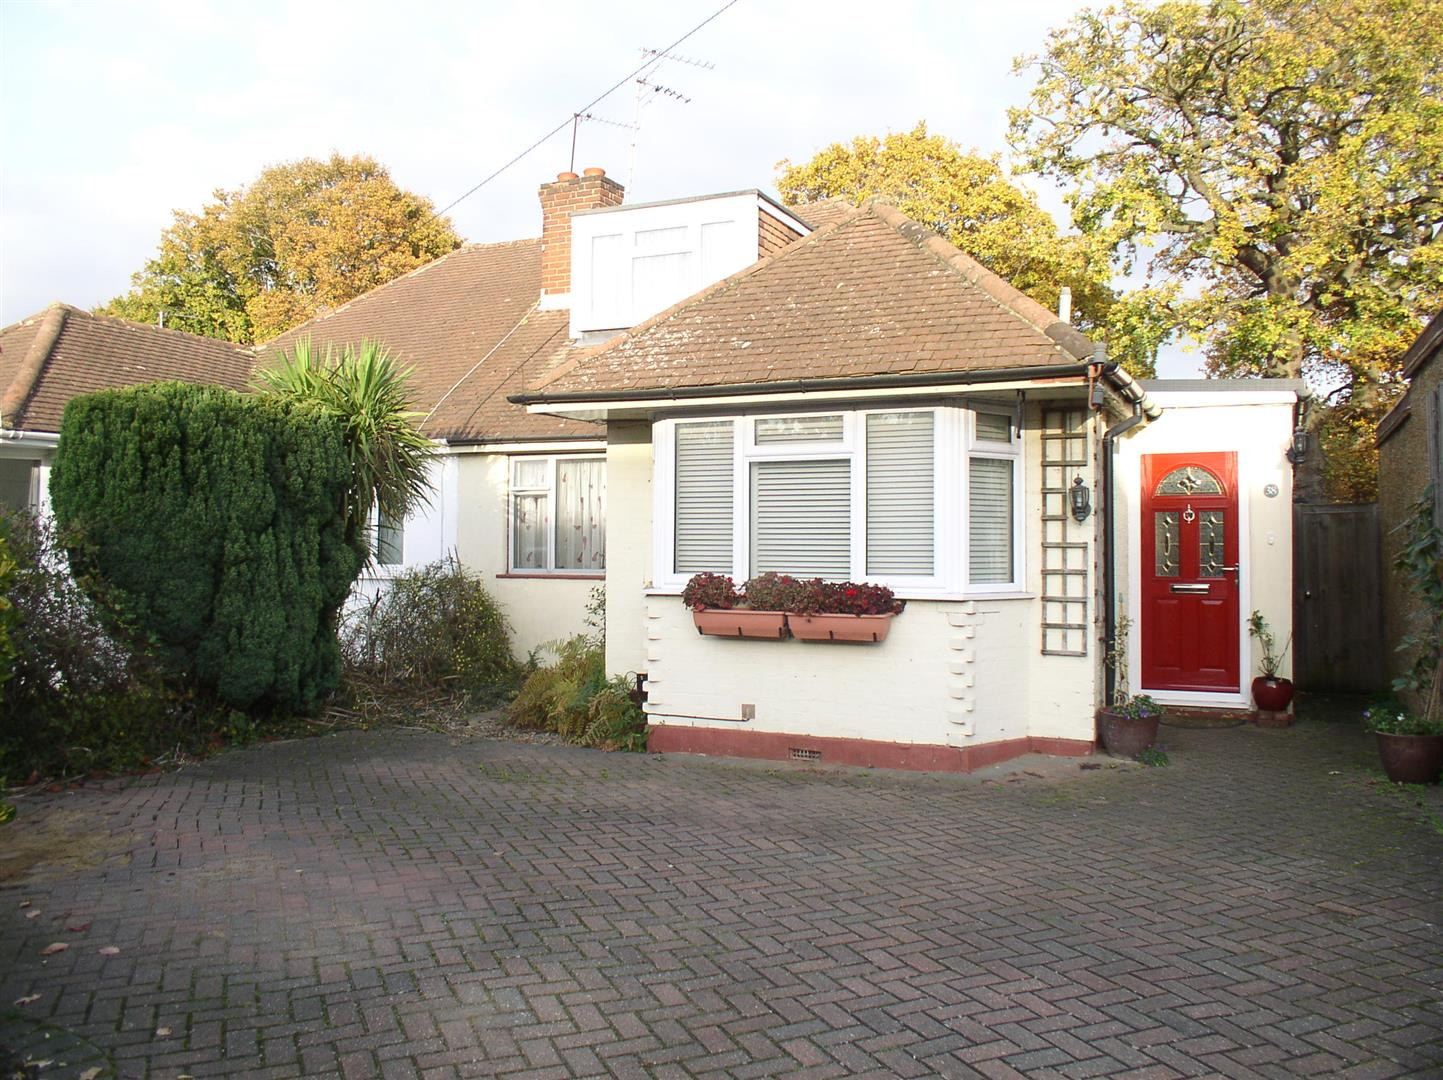 3 Bedrooms House for sale in King George Avenue, Walton-On-Thames